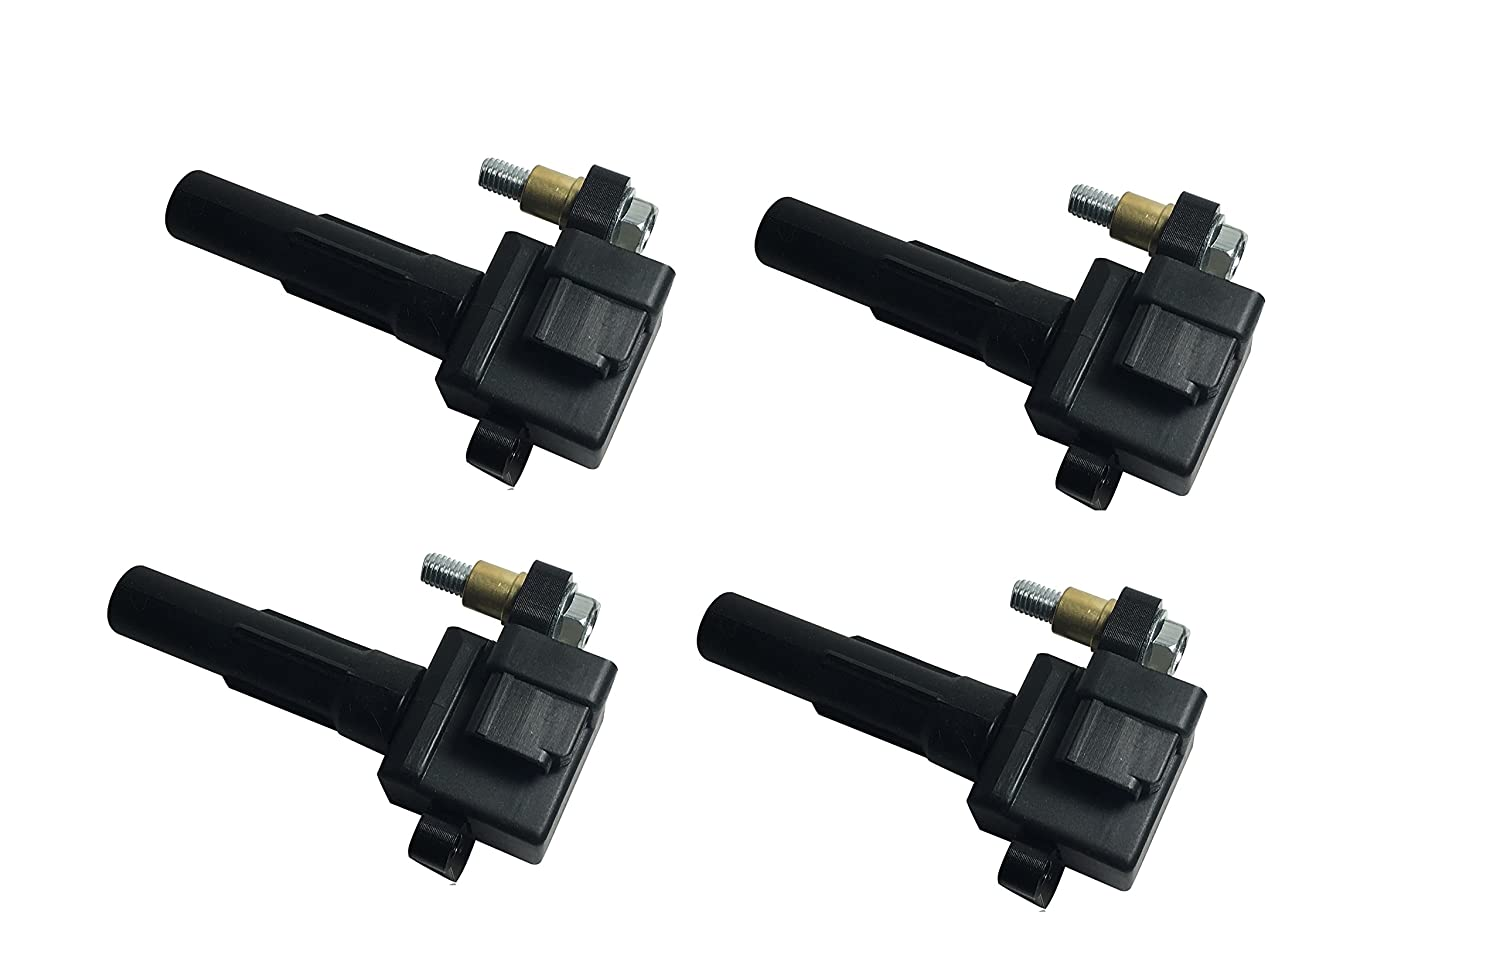 Ignition Coil Pack Set Of 4 Fits Subaru Impreza Wrx Baja Motorsports Wiring Diagram Wagon Replaces 22433aa421 2002 2003 2004 2005 Models Automotive